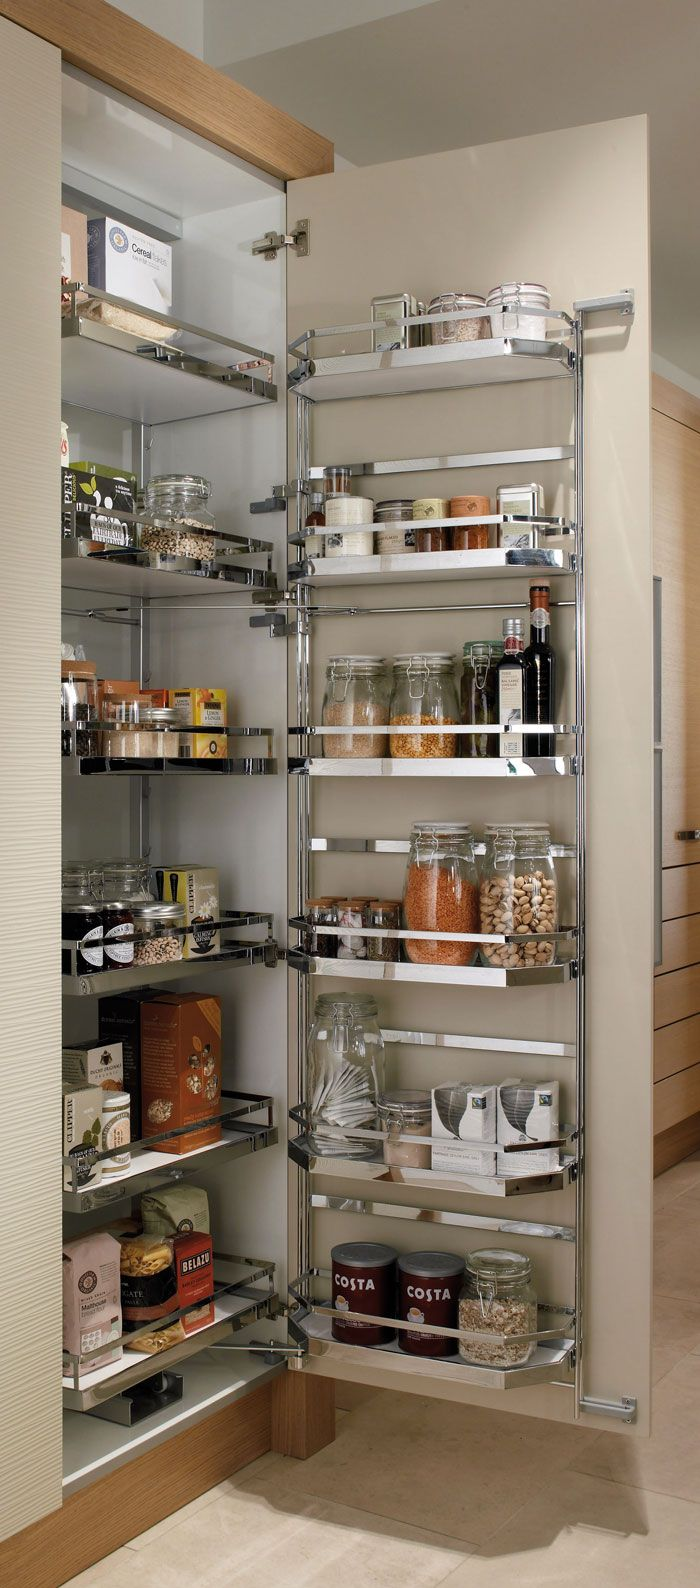 Cupboard Storage Ideas Diy Makeup Room Ideas Organizer Storage And Decorating Makeup